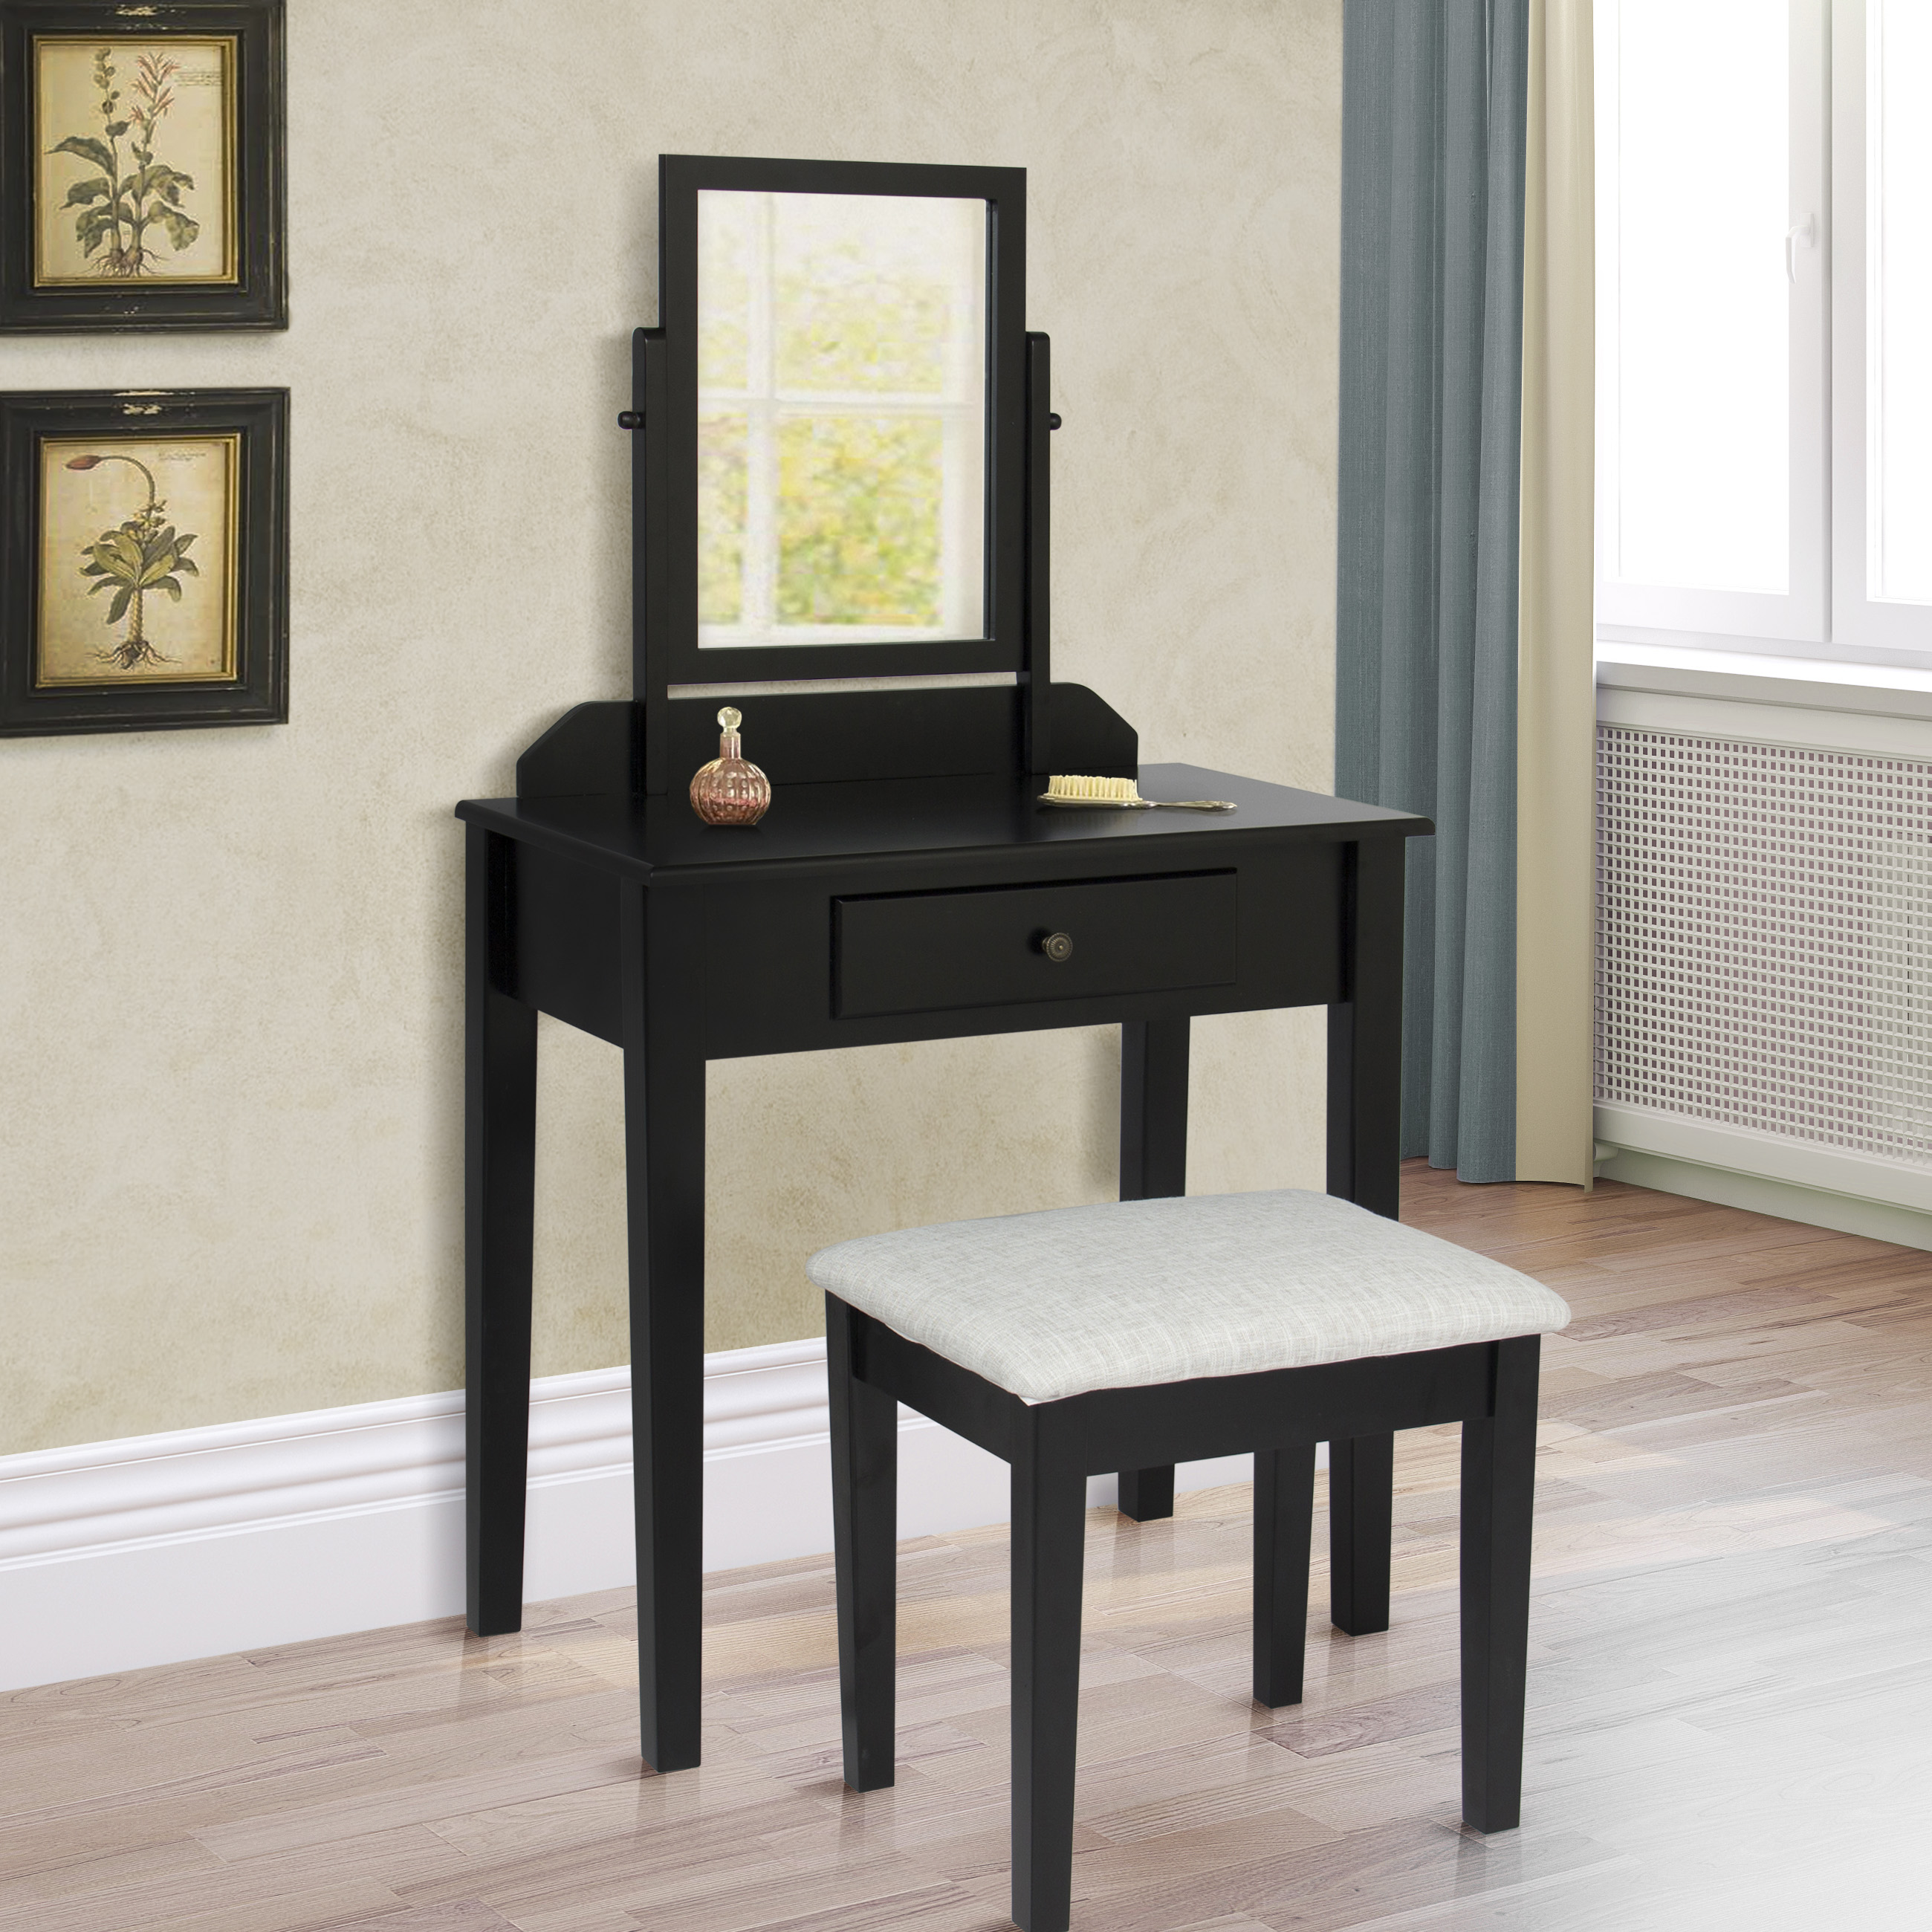 Bobkona St. Croix 3 Fold Mirror Vantiy Table With Stool Set In Black    Walmart.com